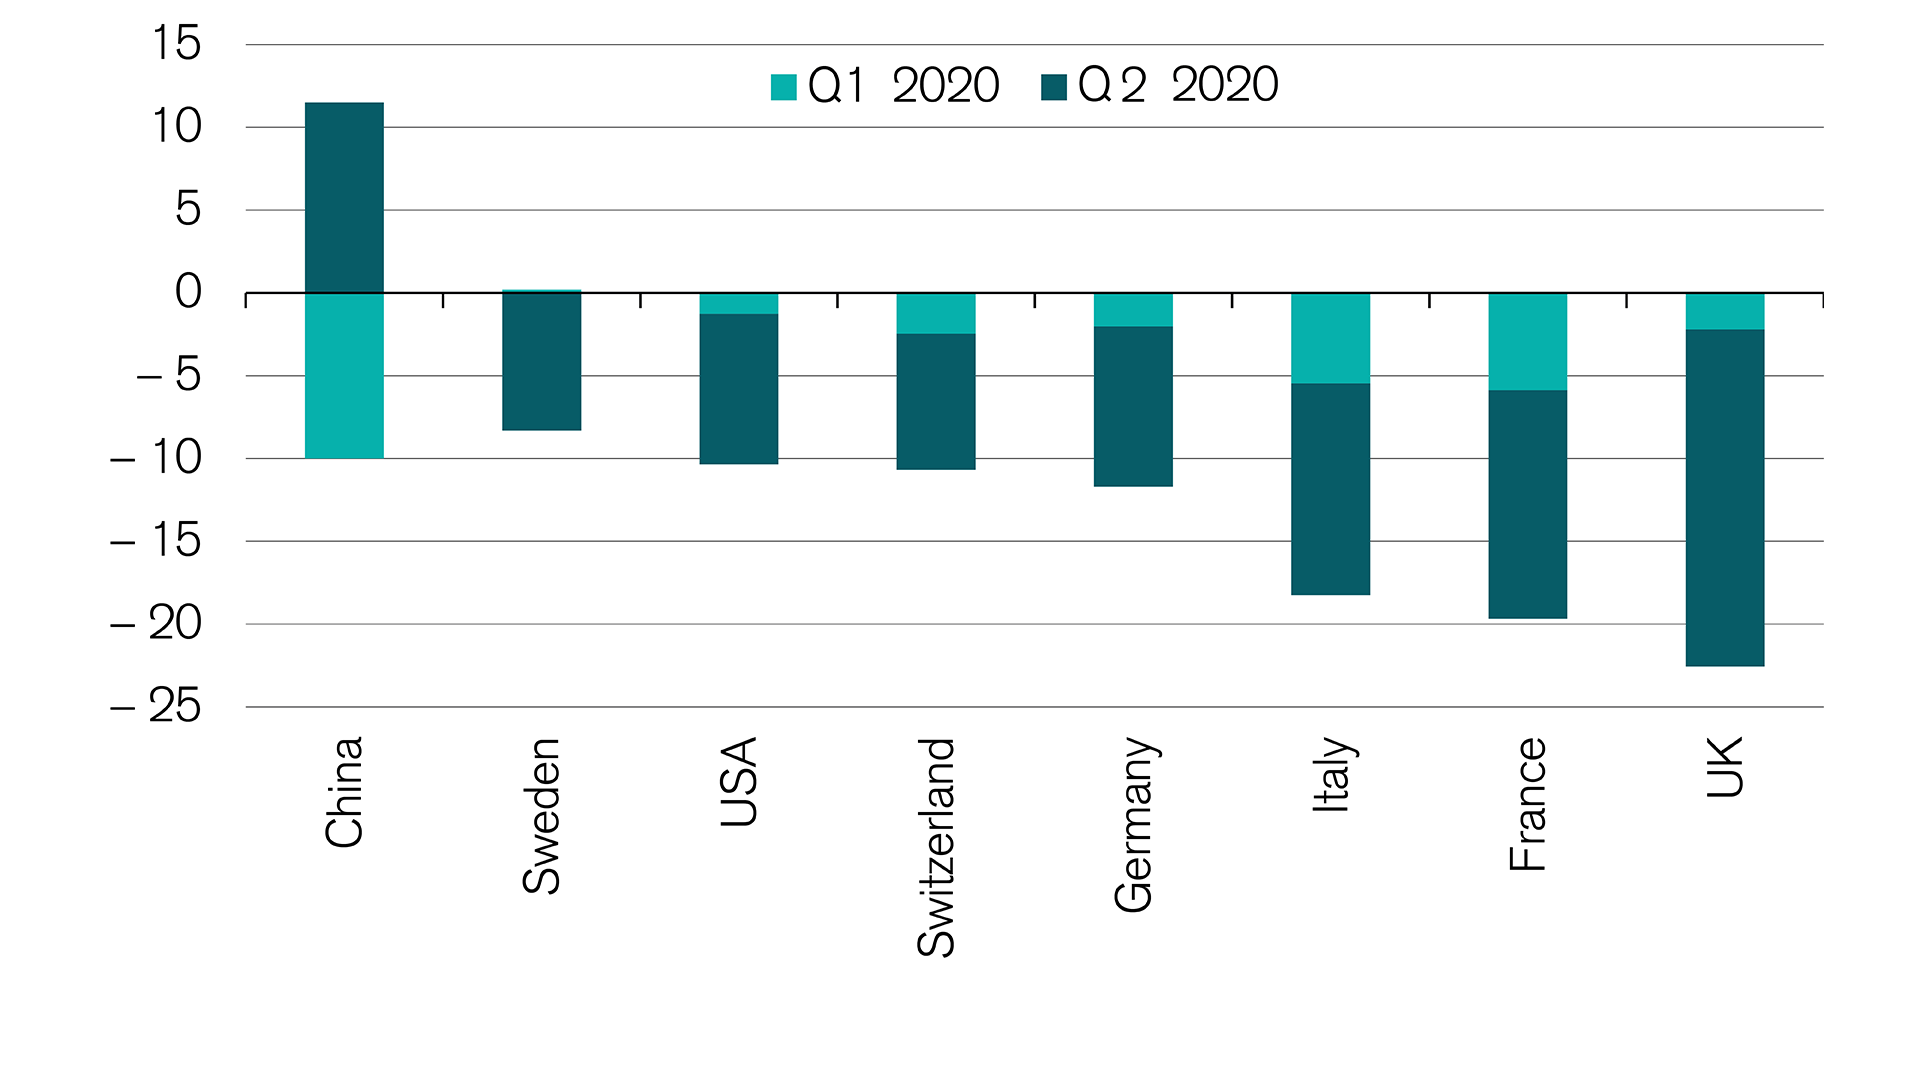 Smaller downturn in Swiss GDP than in other countries